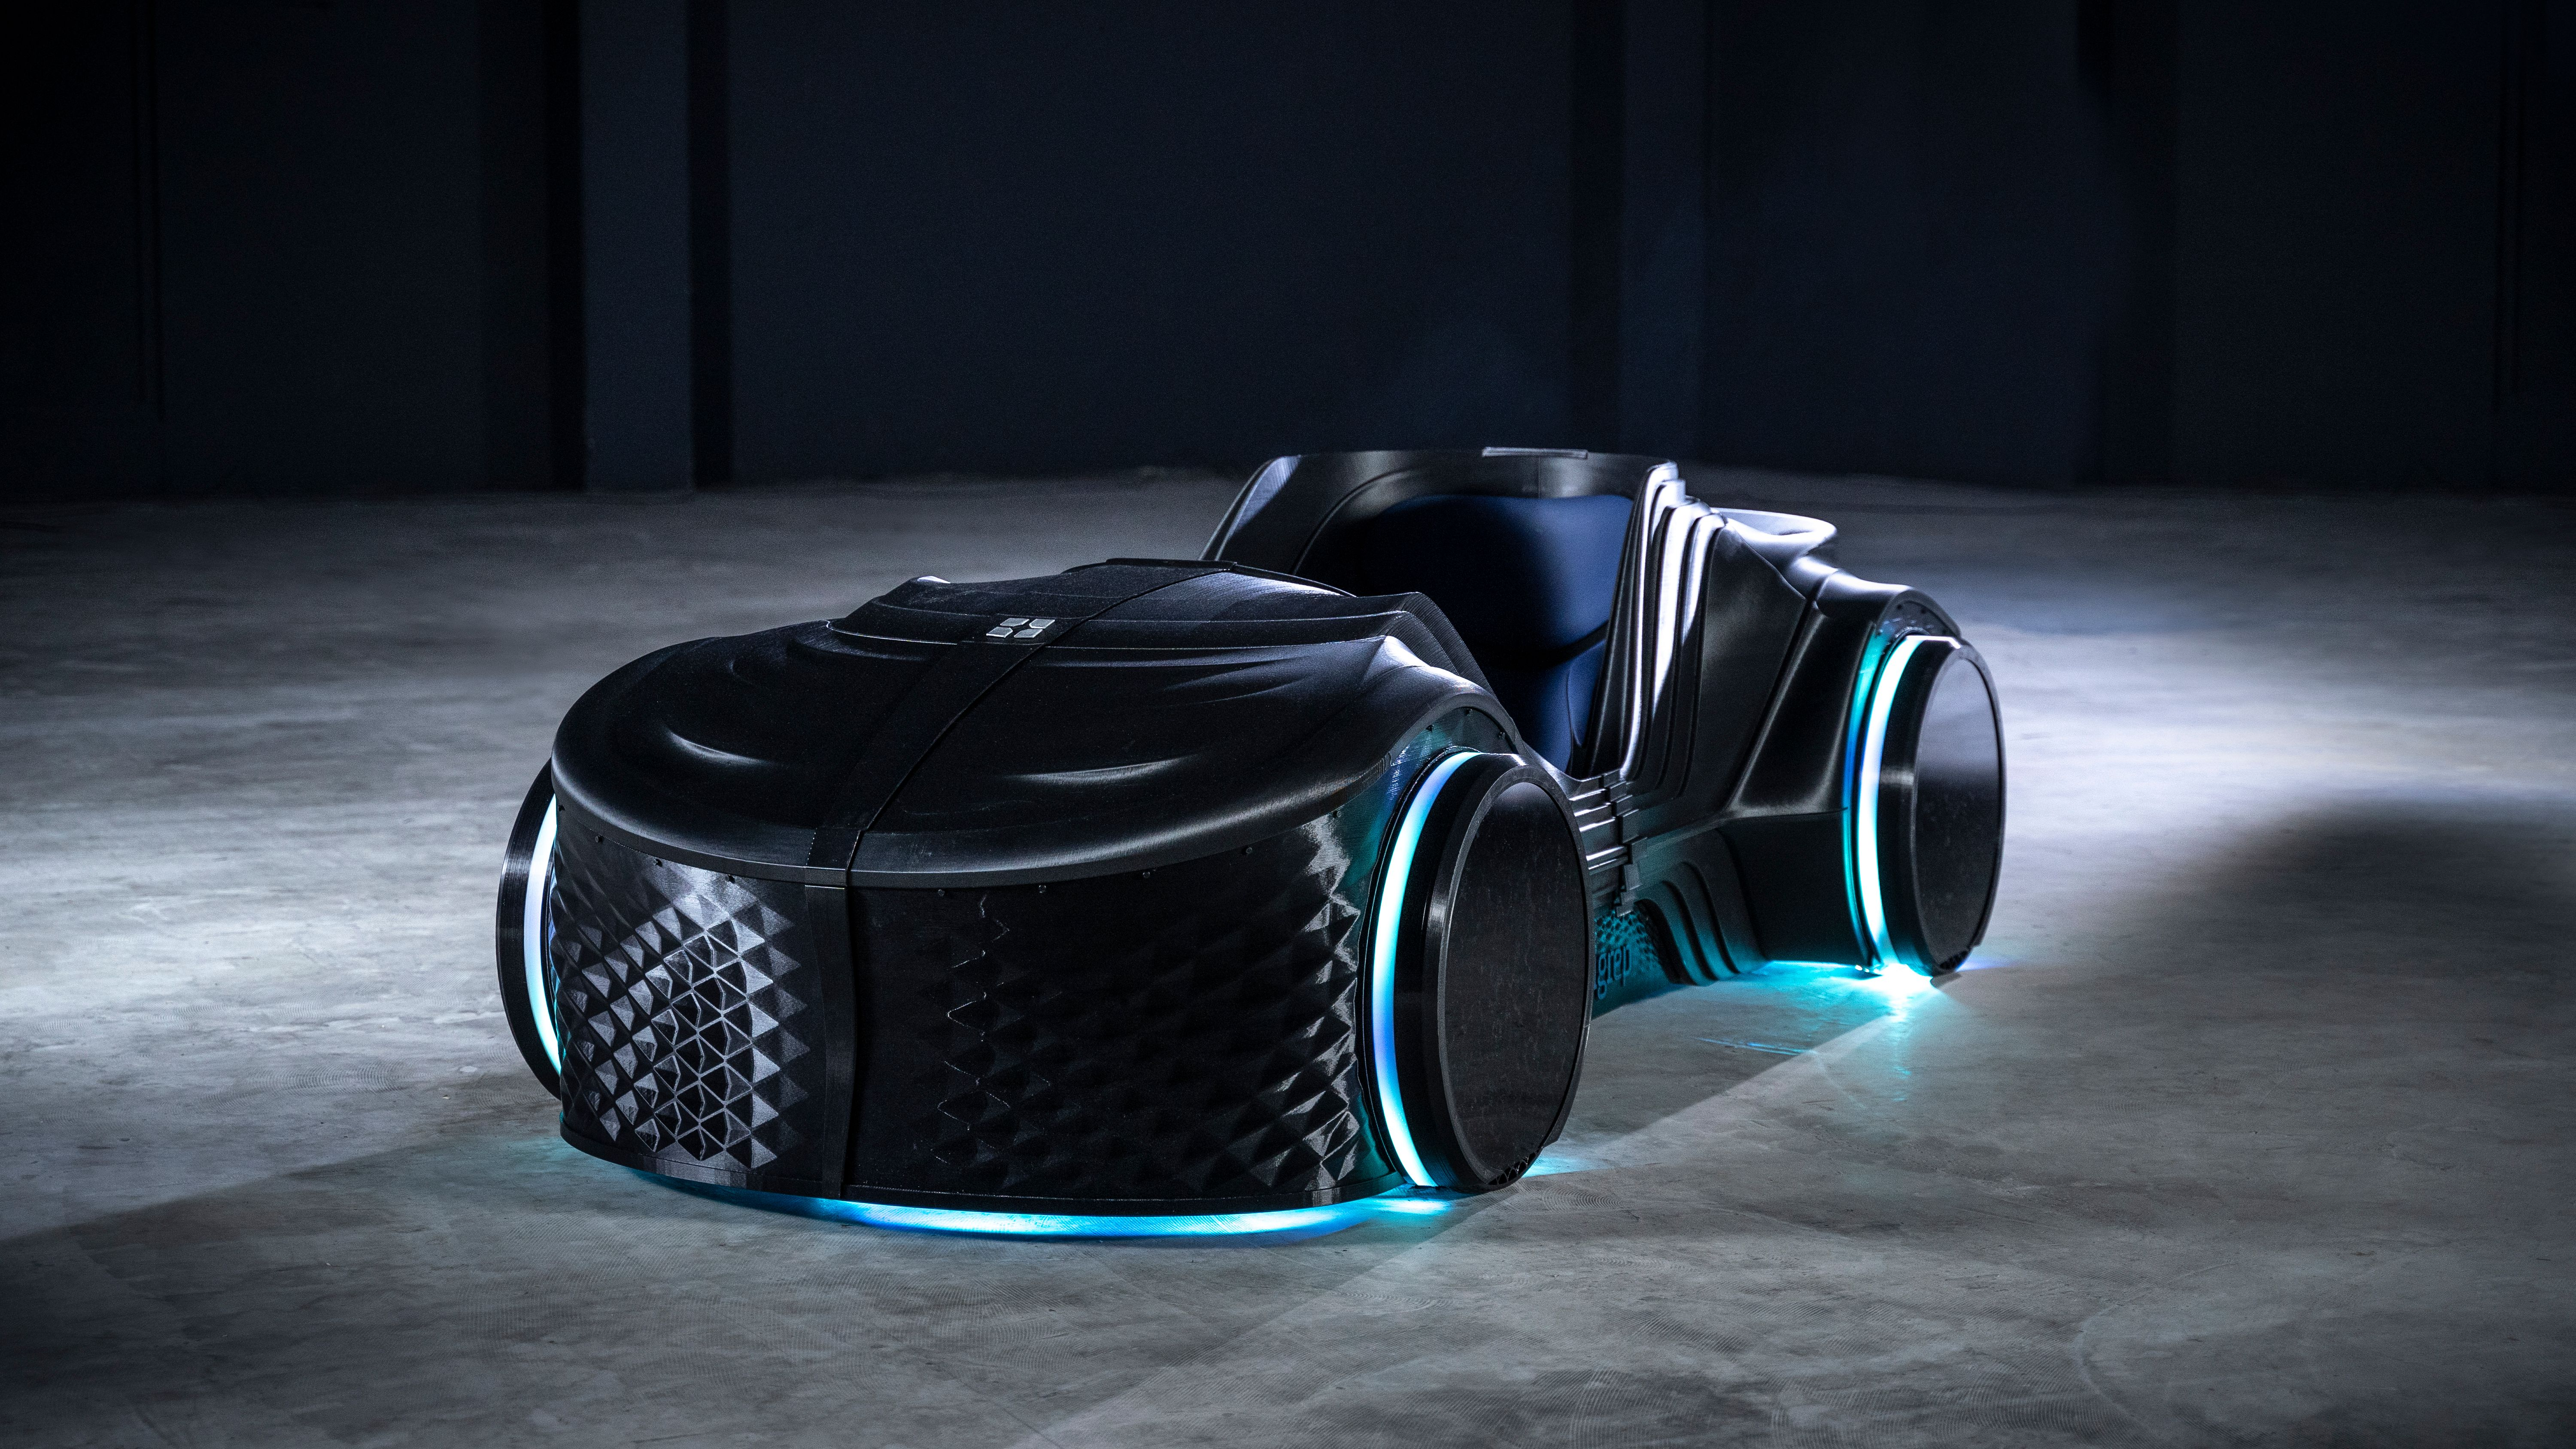 The Loci Podcar by BigRep: a fully 3D-printed autonomous (driving) car.